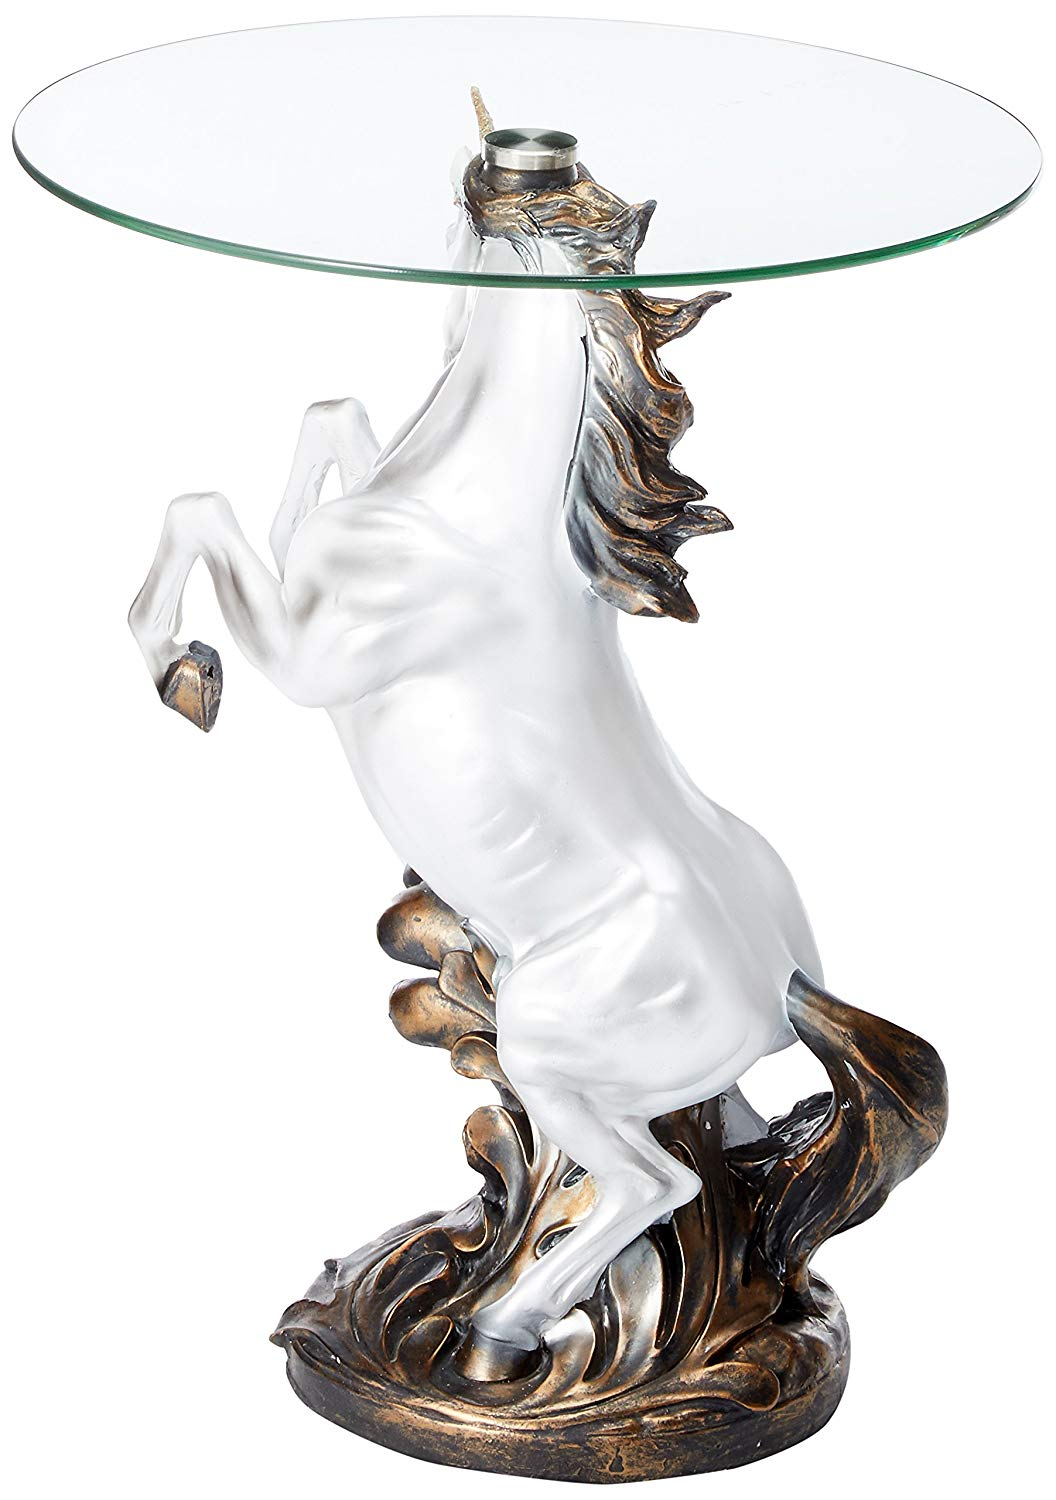 fantasy magical unicorn horse glass top accent table kitchen dining college dorm room decor half moon sofa versailles furniture set living tables bedroom chairs target narrow